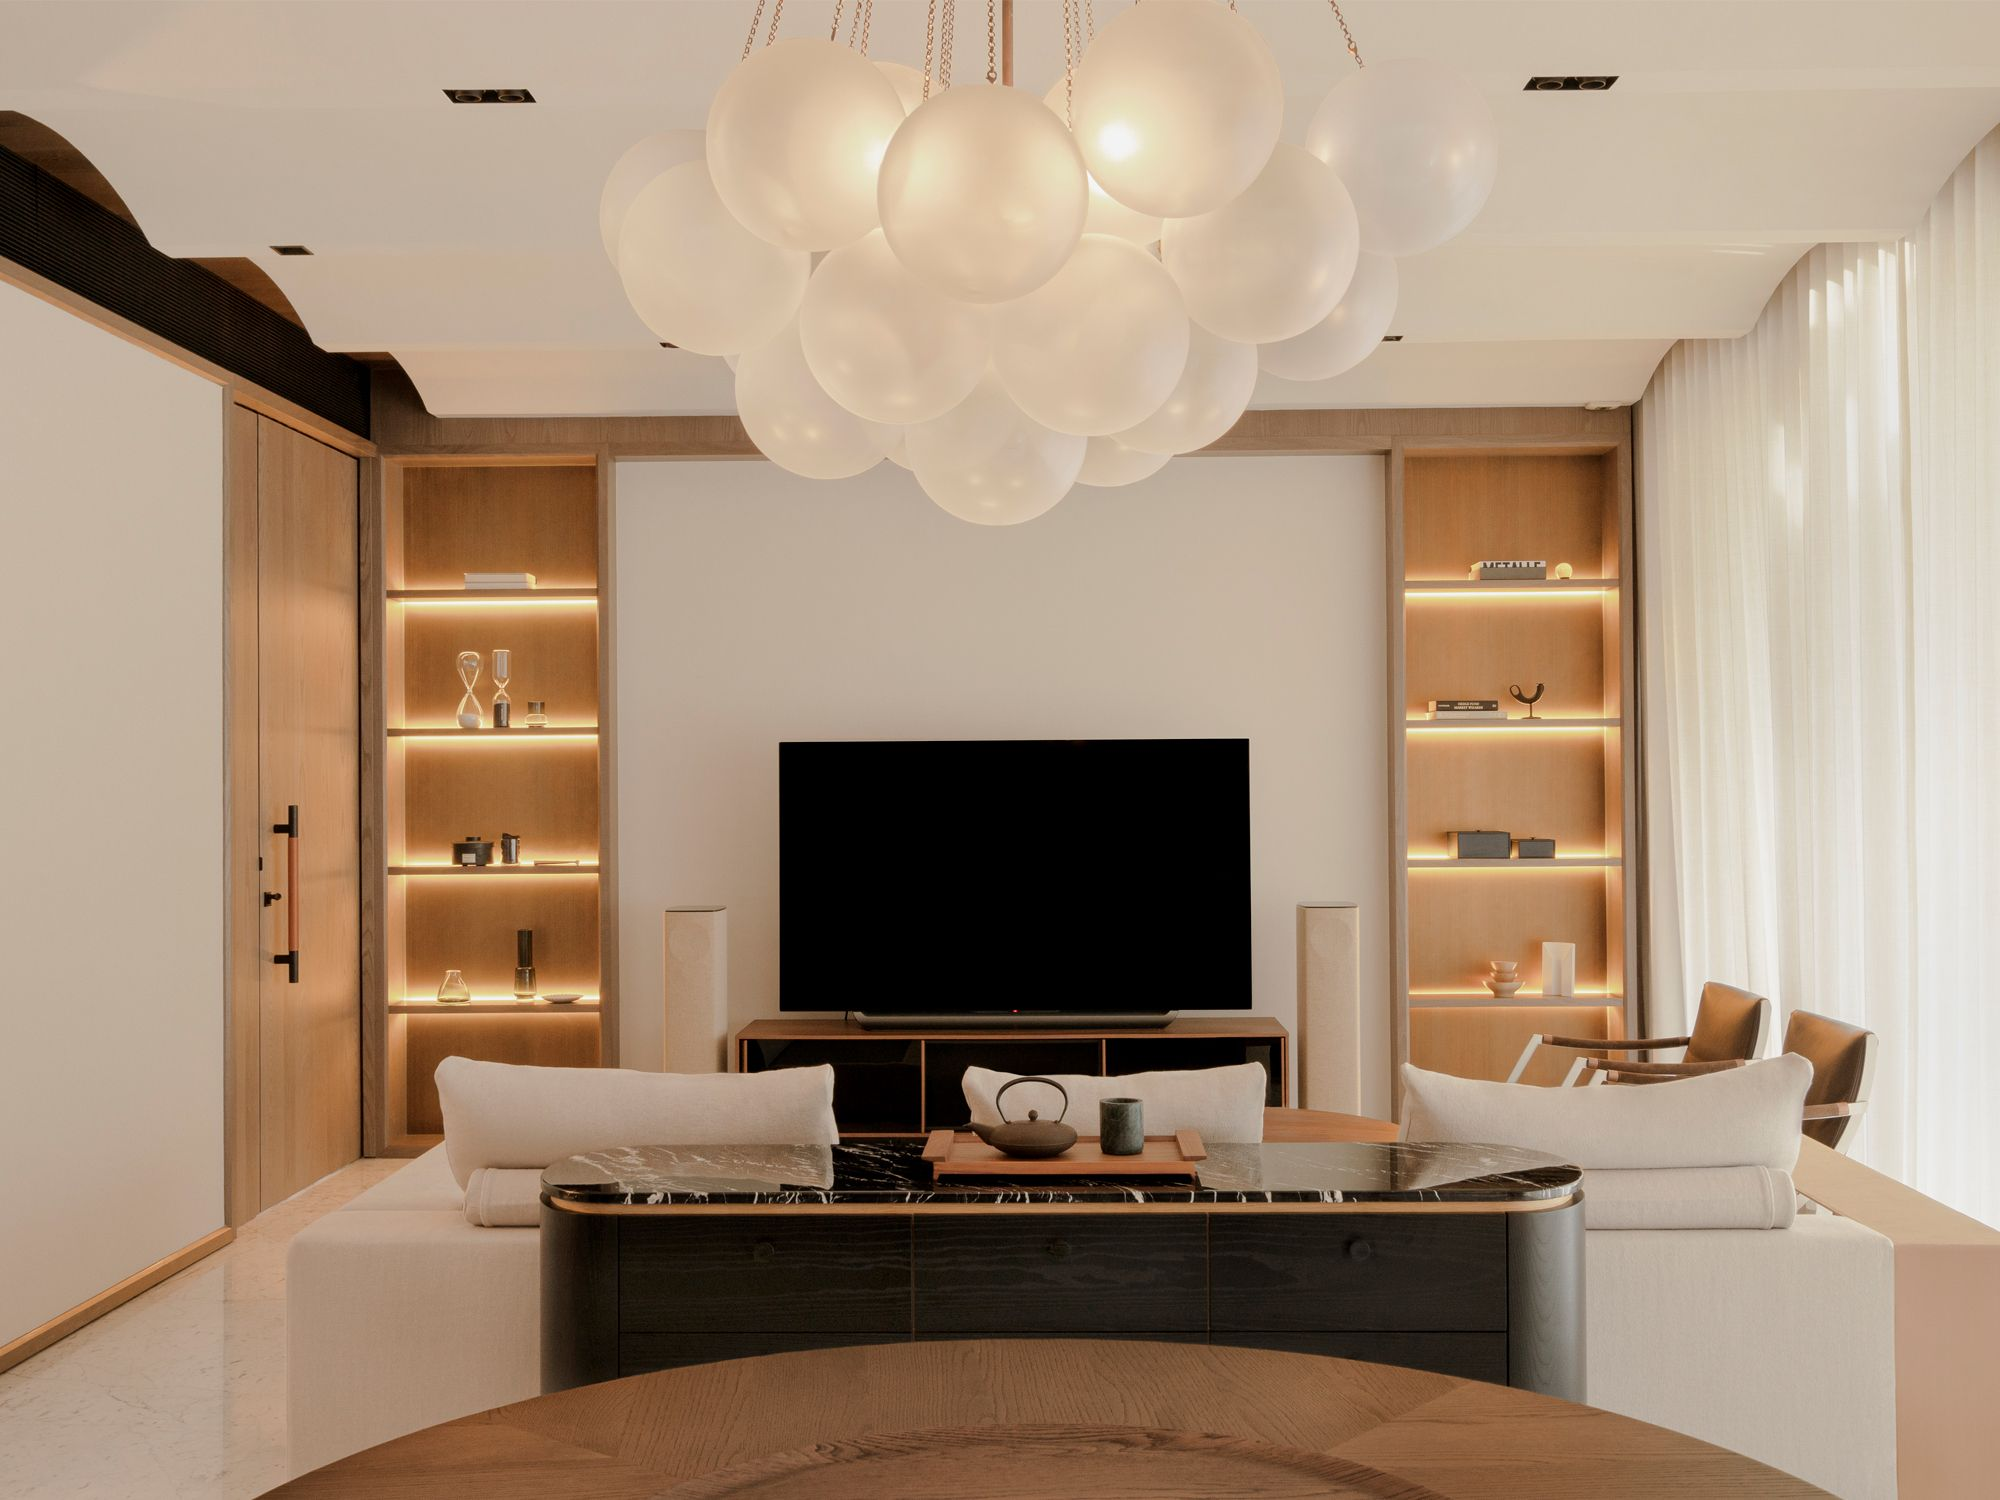 The backlit shelves in the living room showcase objets d'art and collectibles